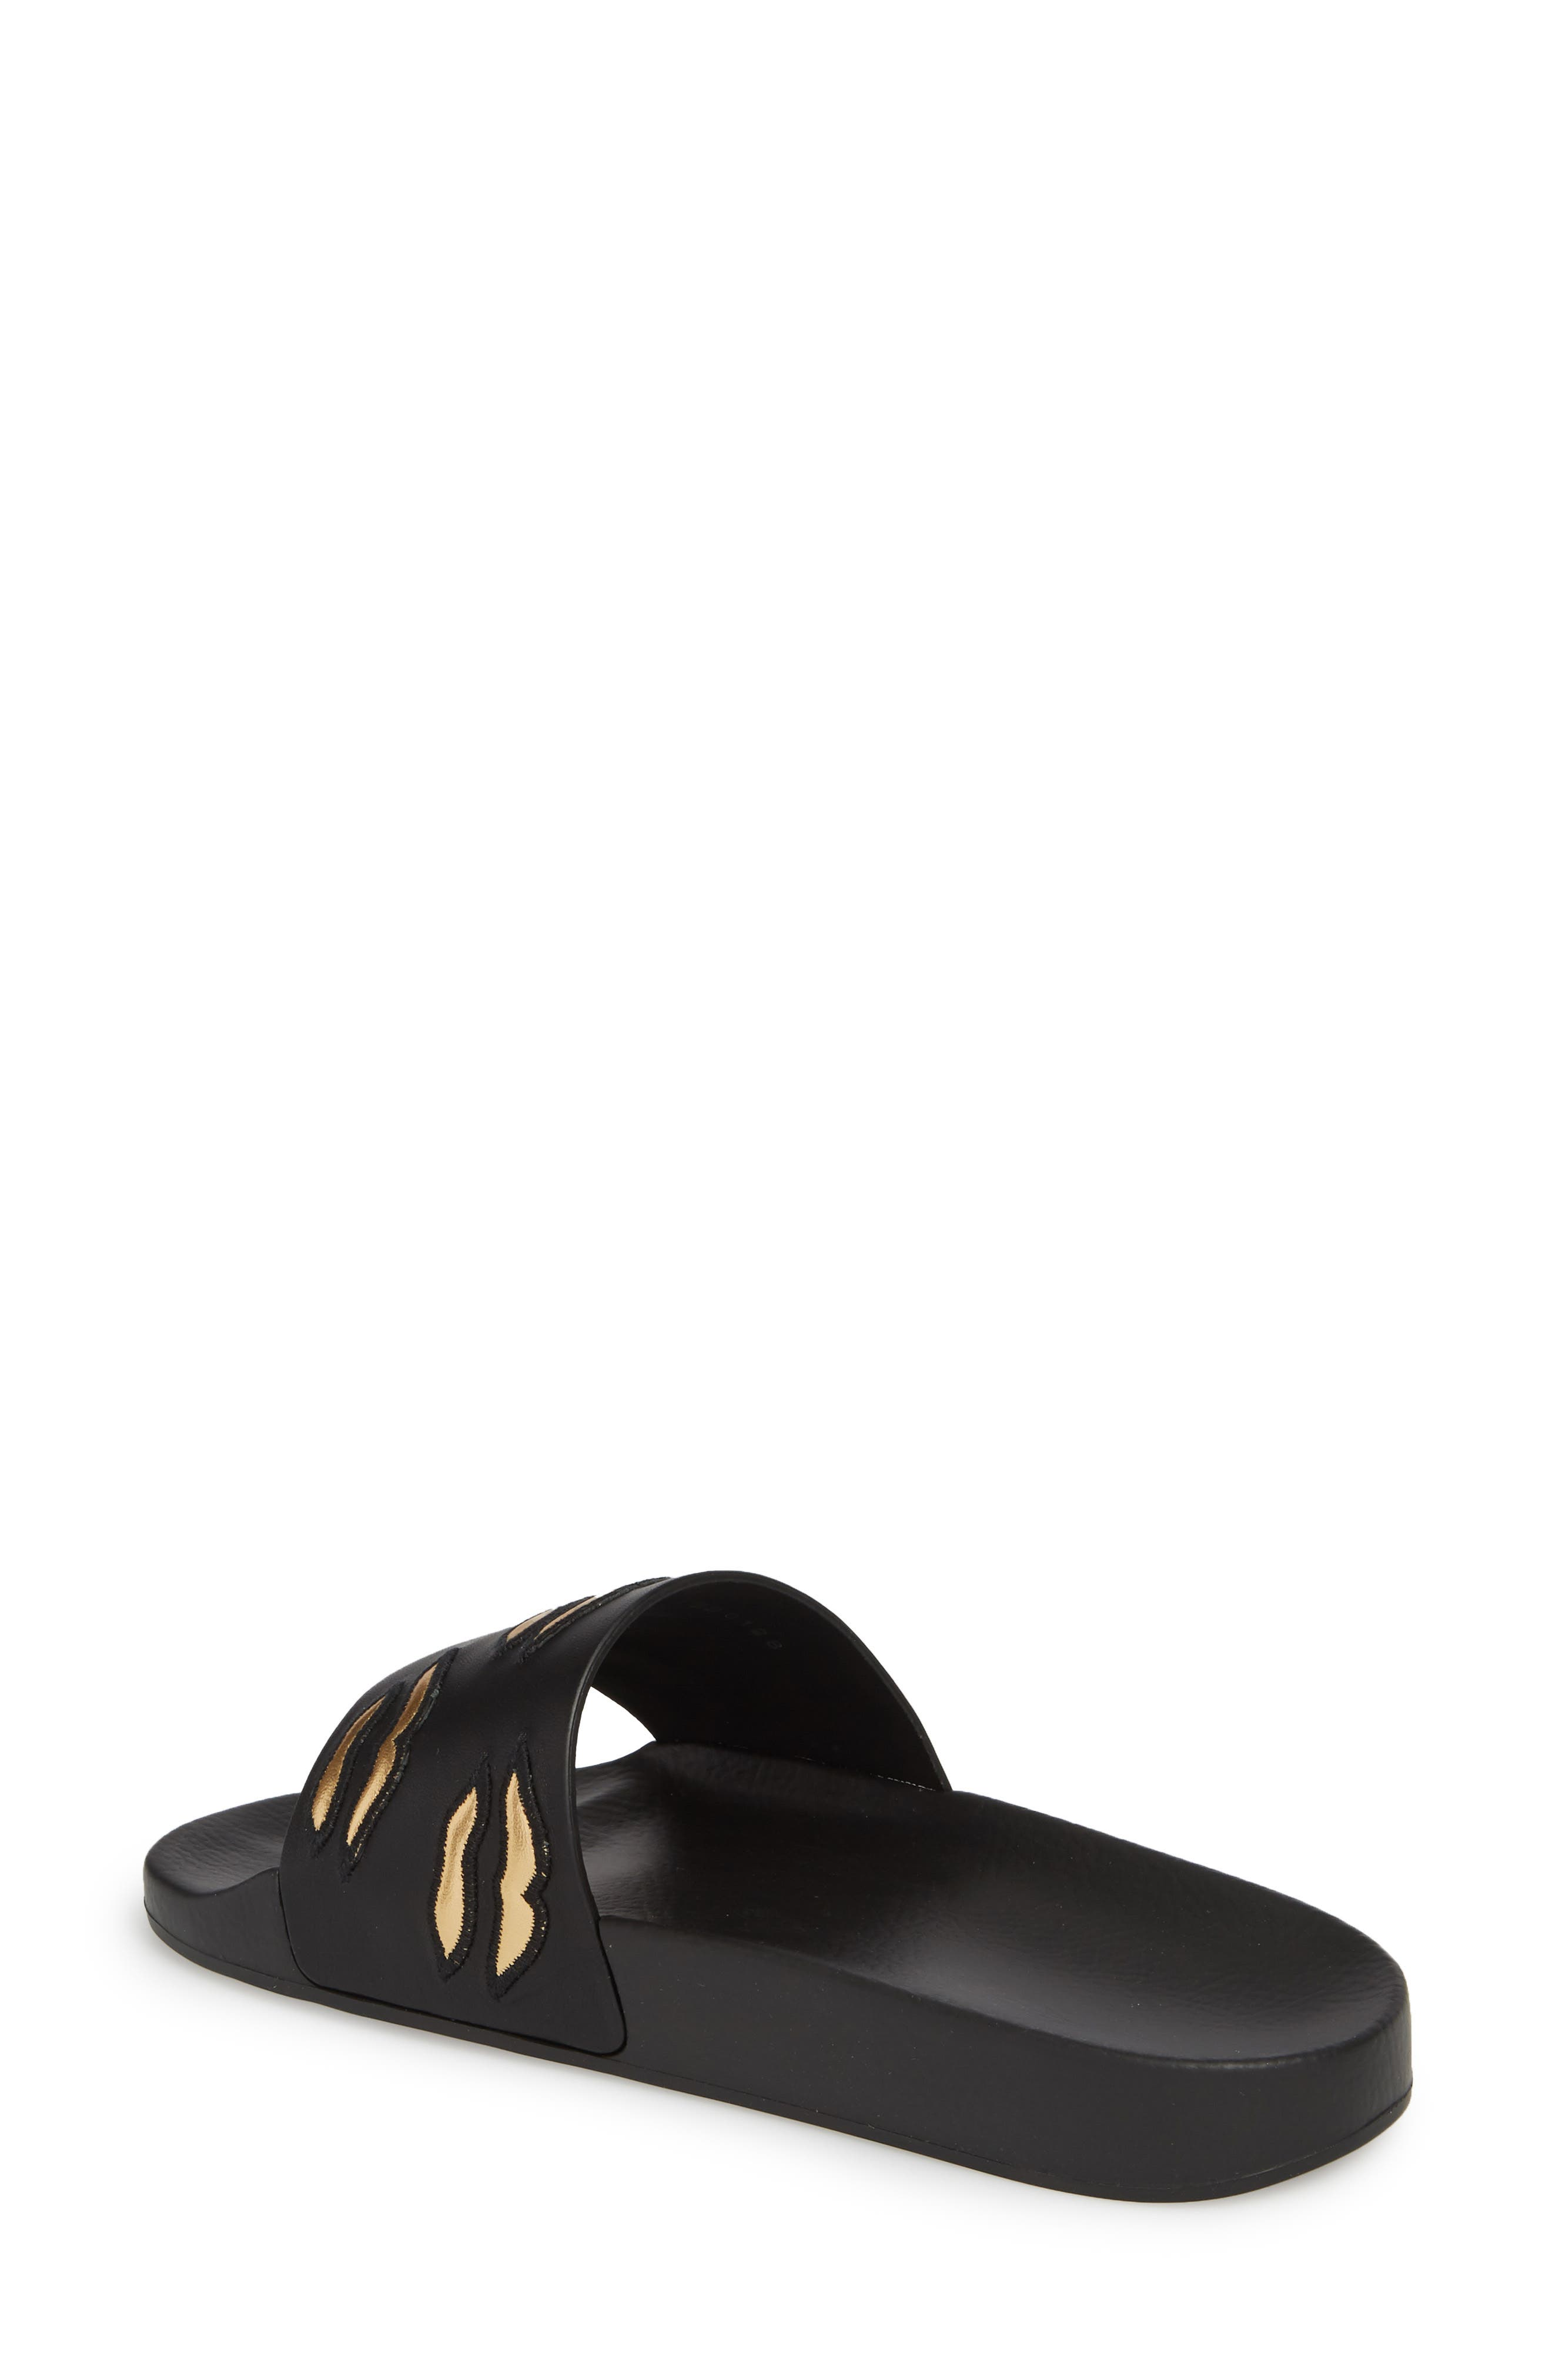 Kiss Slide Sandal,                             Alternate thumbnail 2, color,                             BLACK/ GOLD